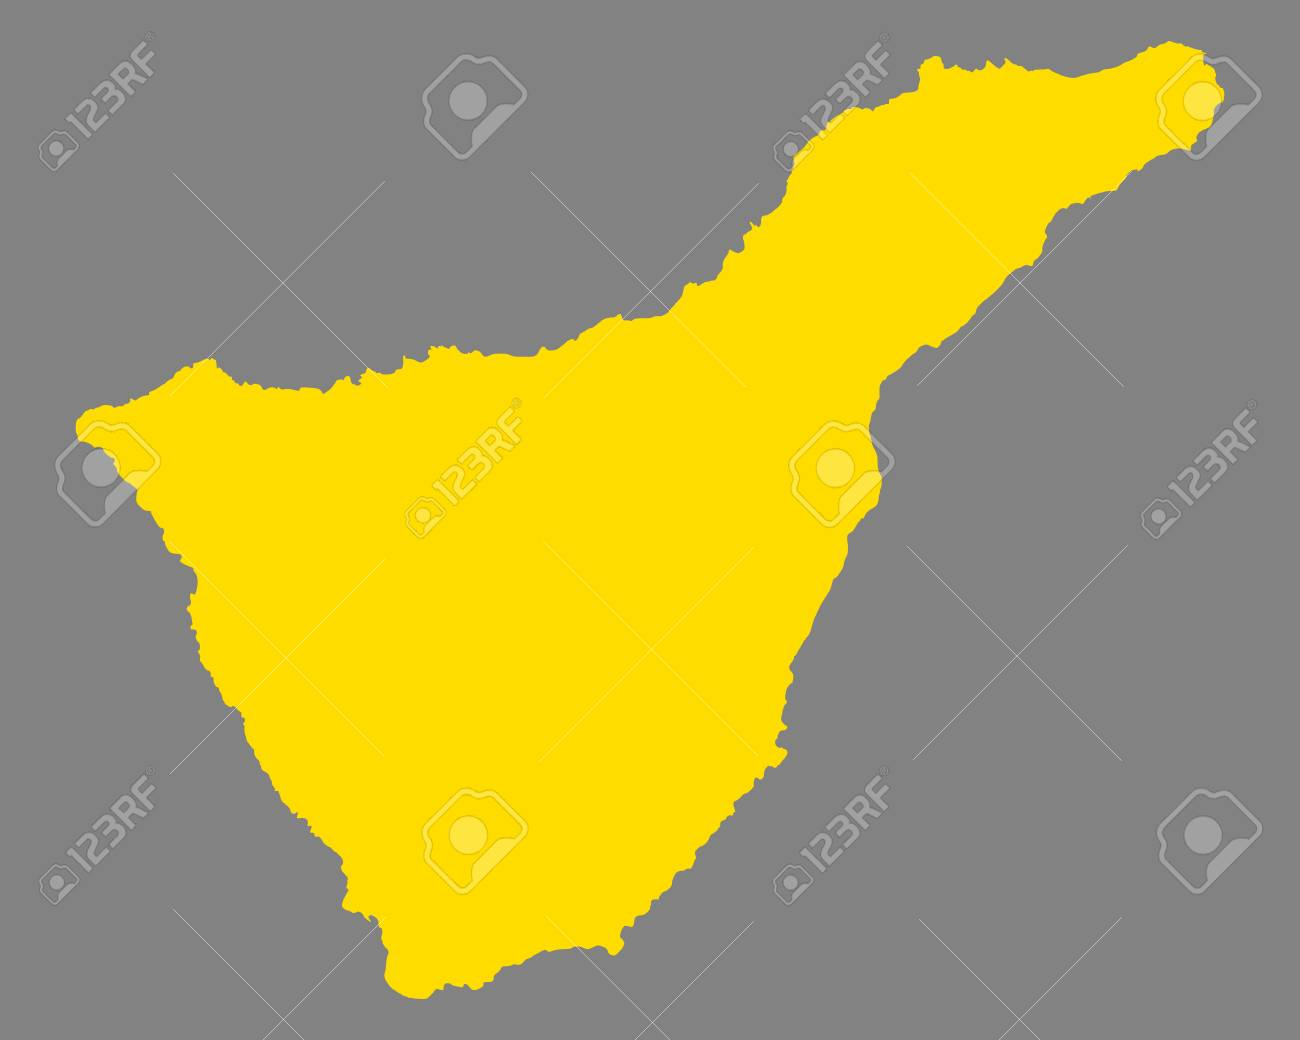 Map Of Tenerife Royalty Free Cliparts, Vectors, And Stock ...